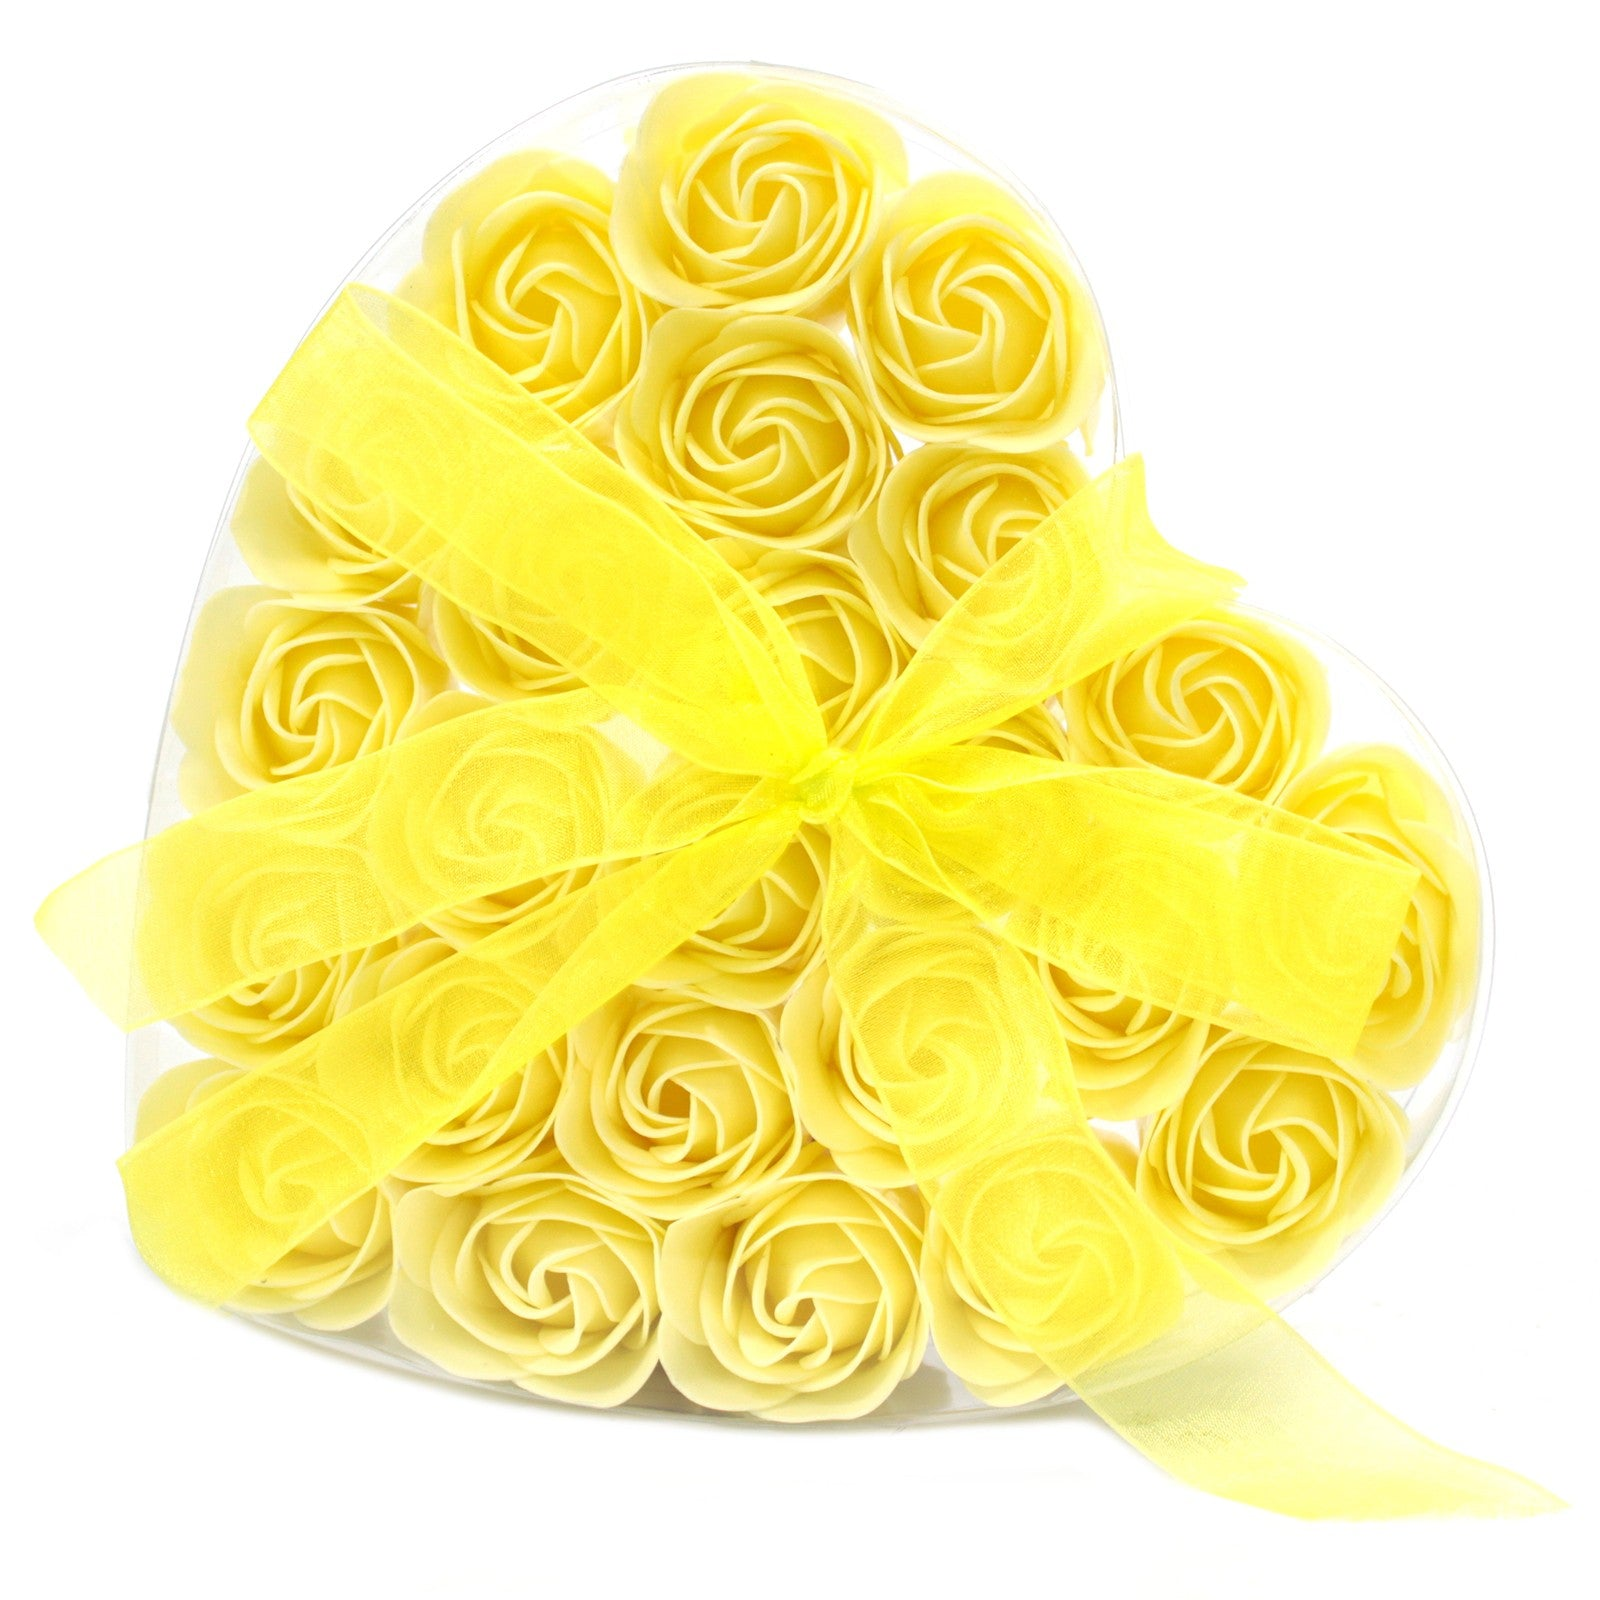 Set of 24 Luxury Soap Flower Heart Box - Yellow Roses